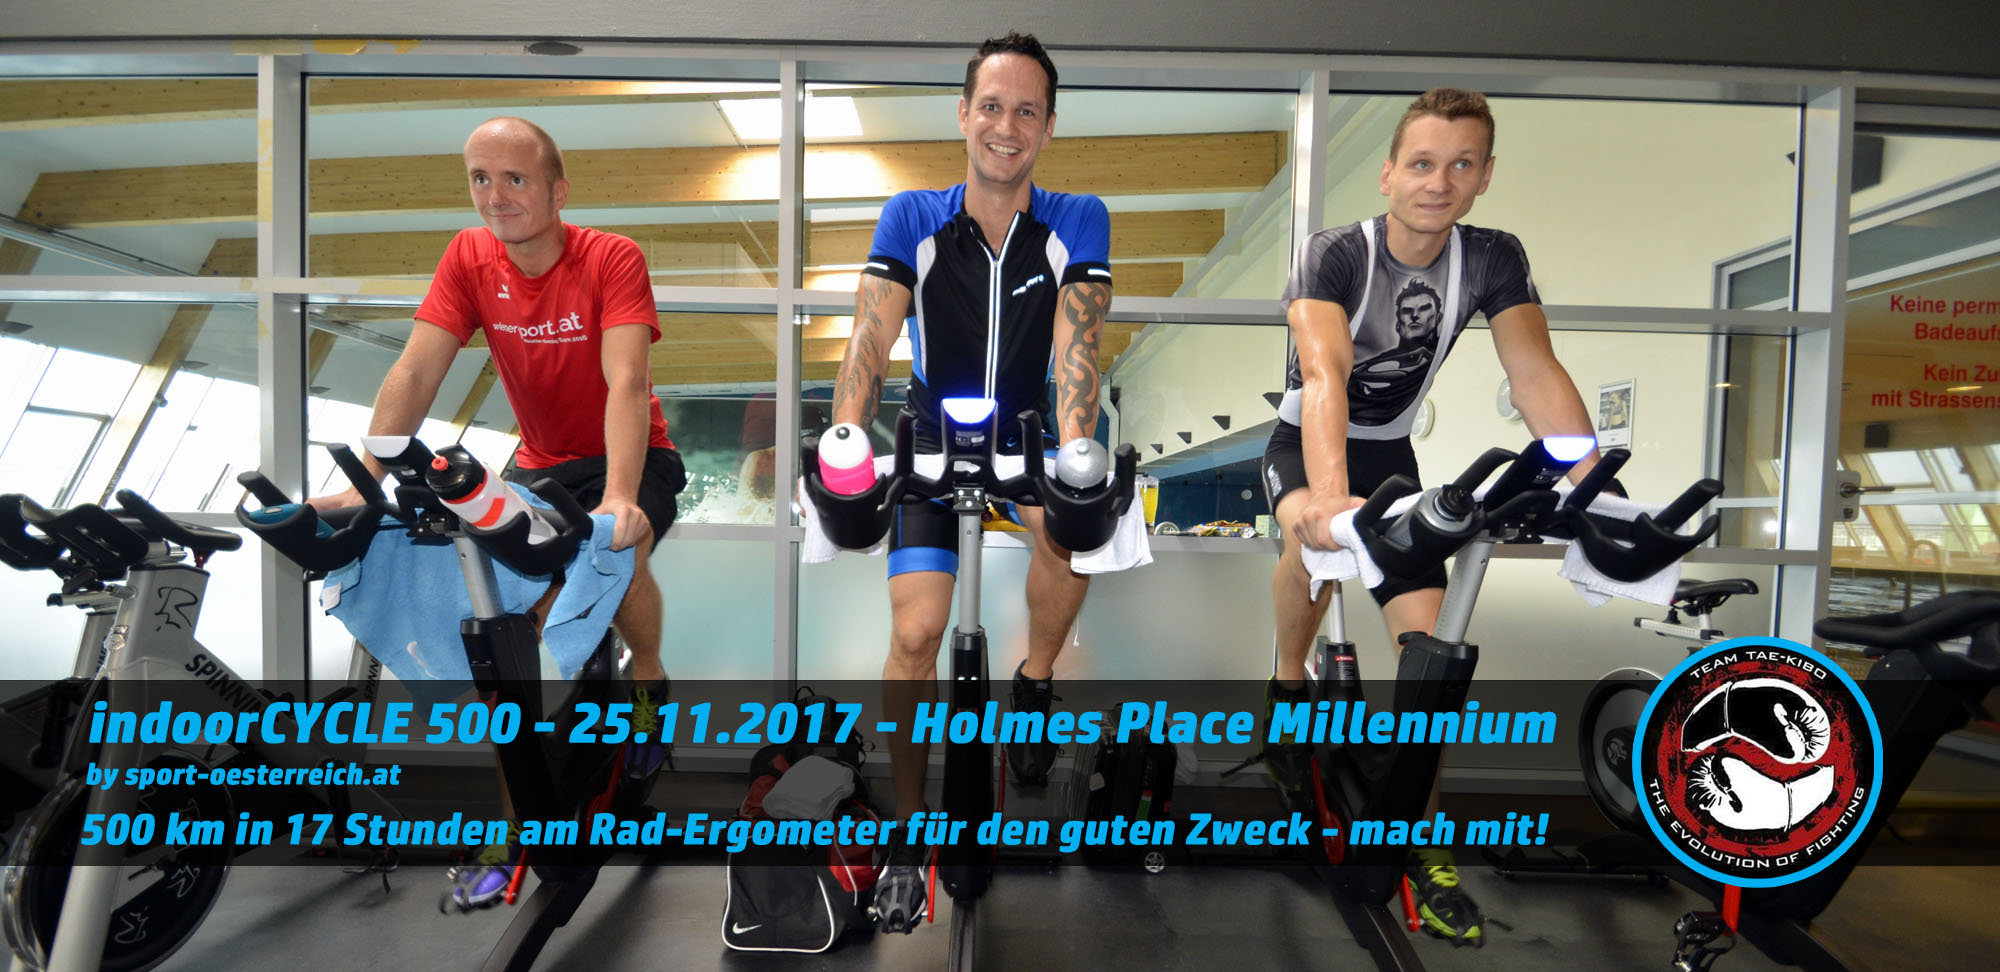 indoorCYCLE 500